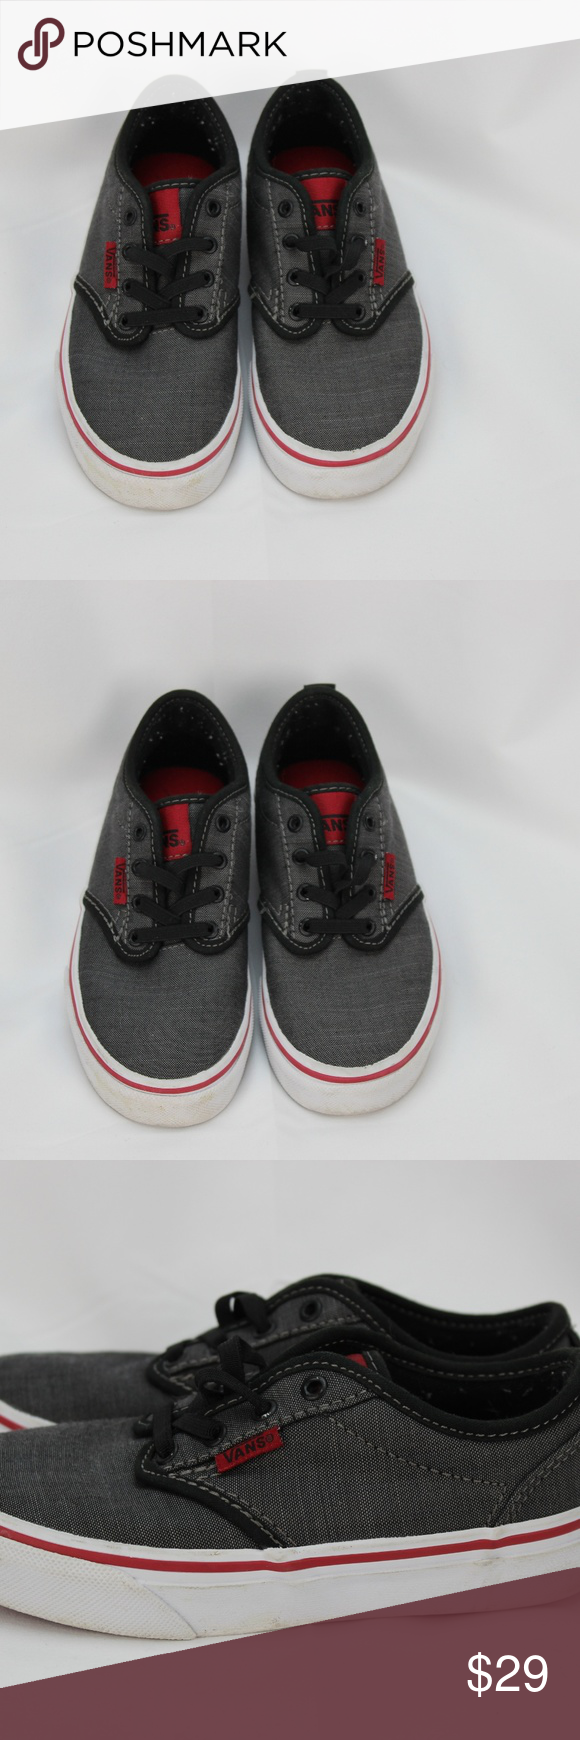 cc972efbfe93ff Boys Vans Atwood Size 12.5 Youth Gray and Red Excellent pre-owned  condition. Boys Vans Atwood slip on